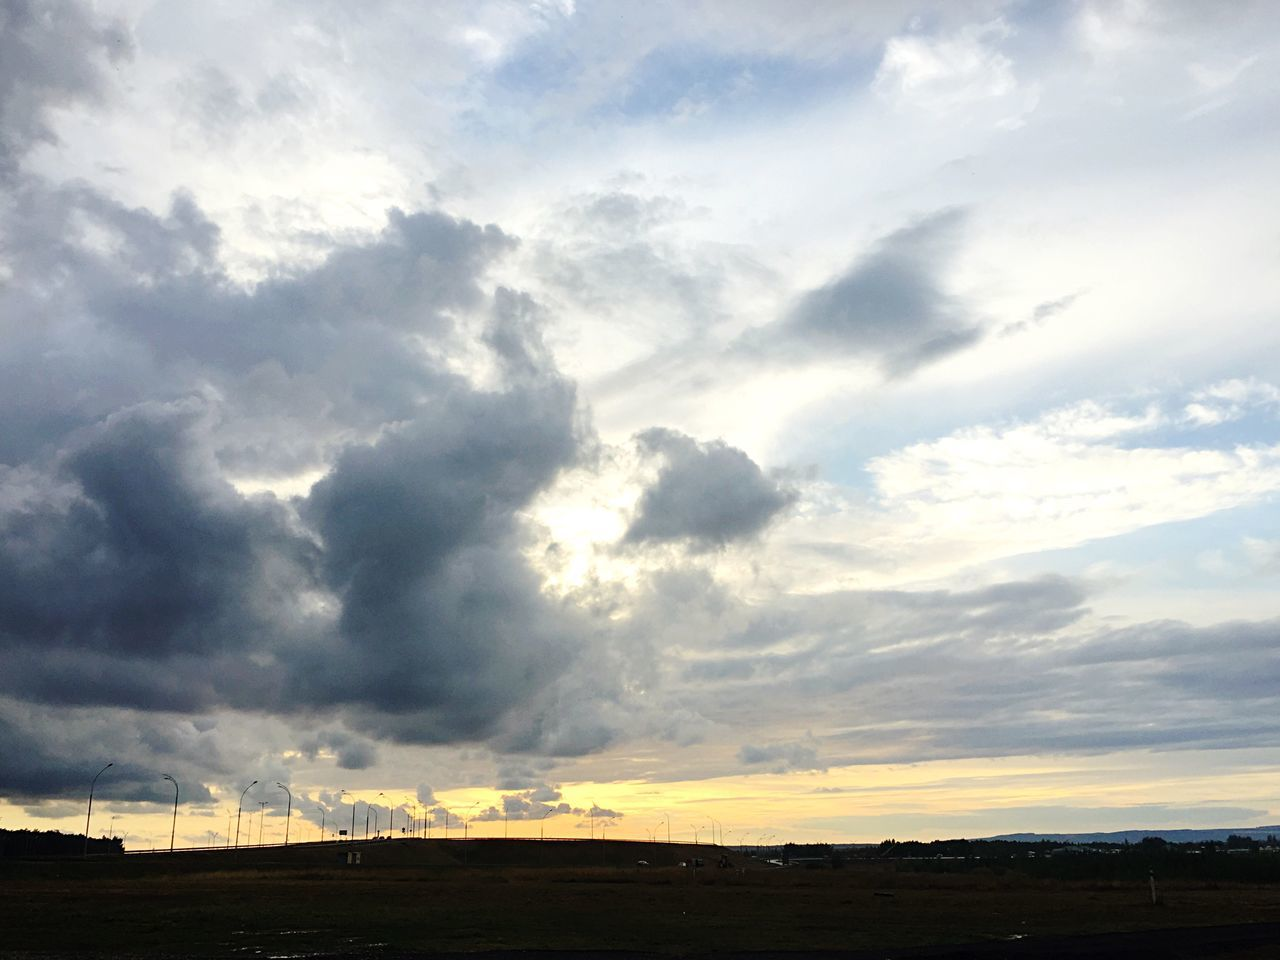 sky, cloud - sky, nature, landscape, scenics, no people, tranquility, beauty in nature, outdoors, day